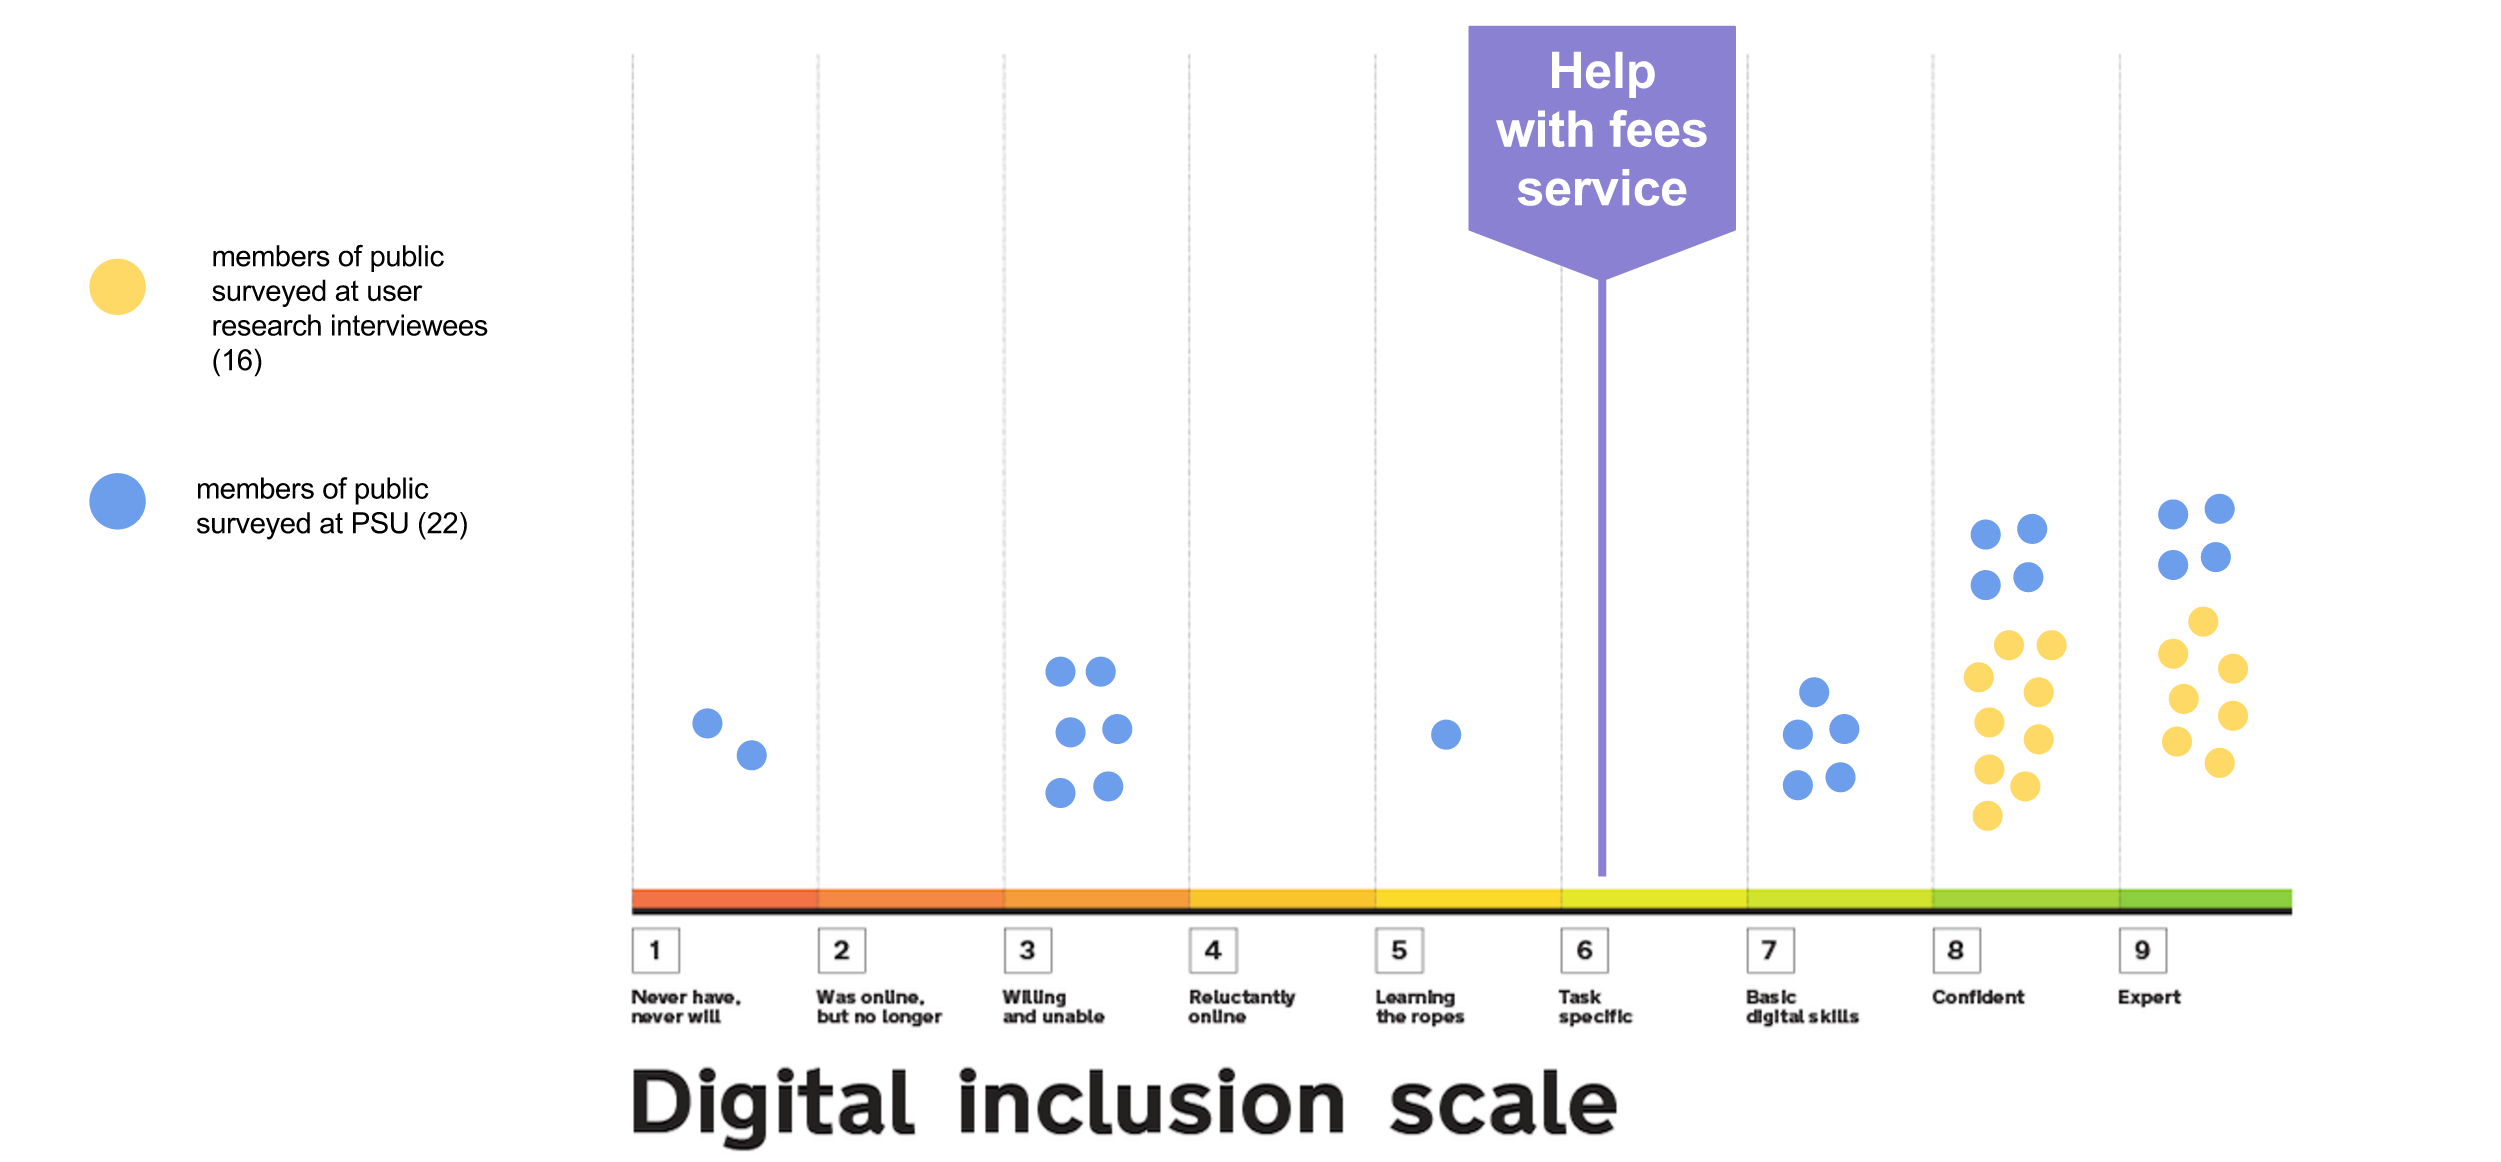 User skills mapped against the Digital Inclusion scale